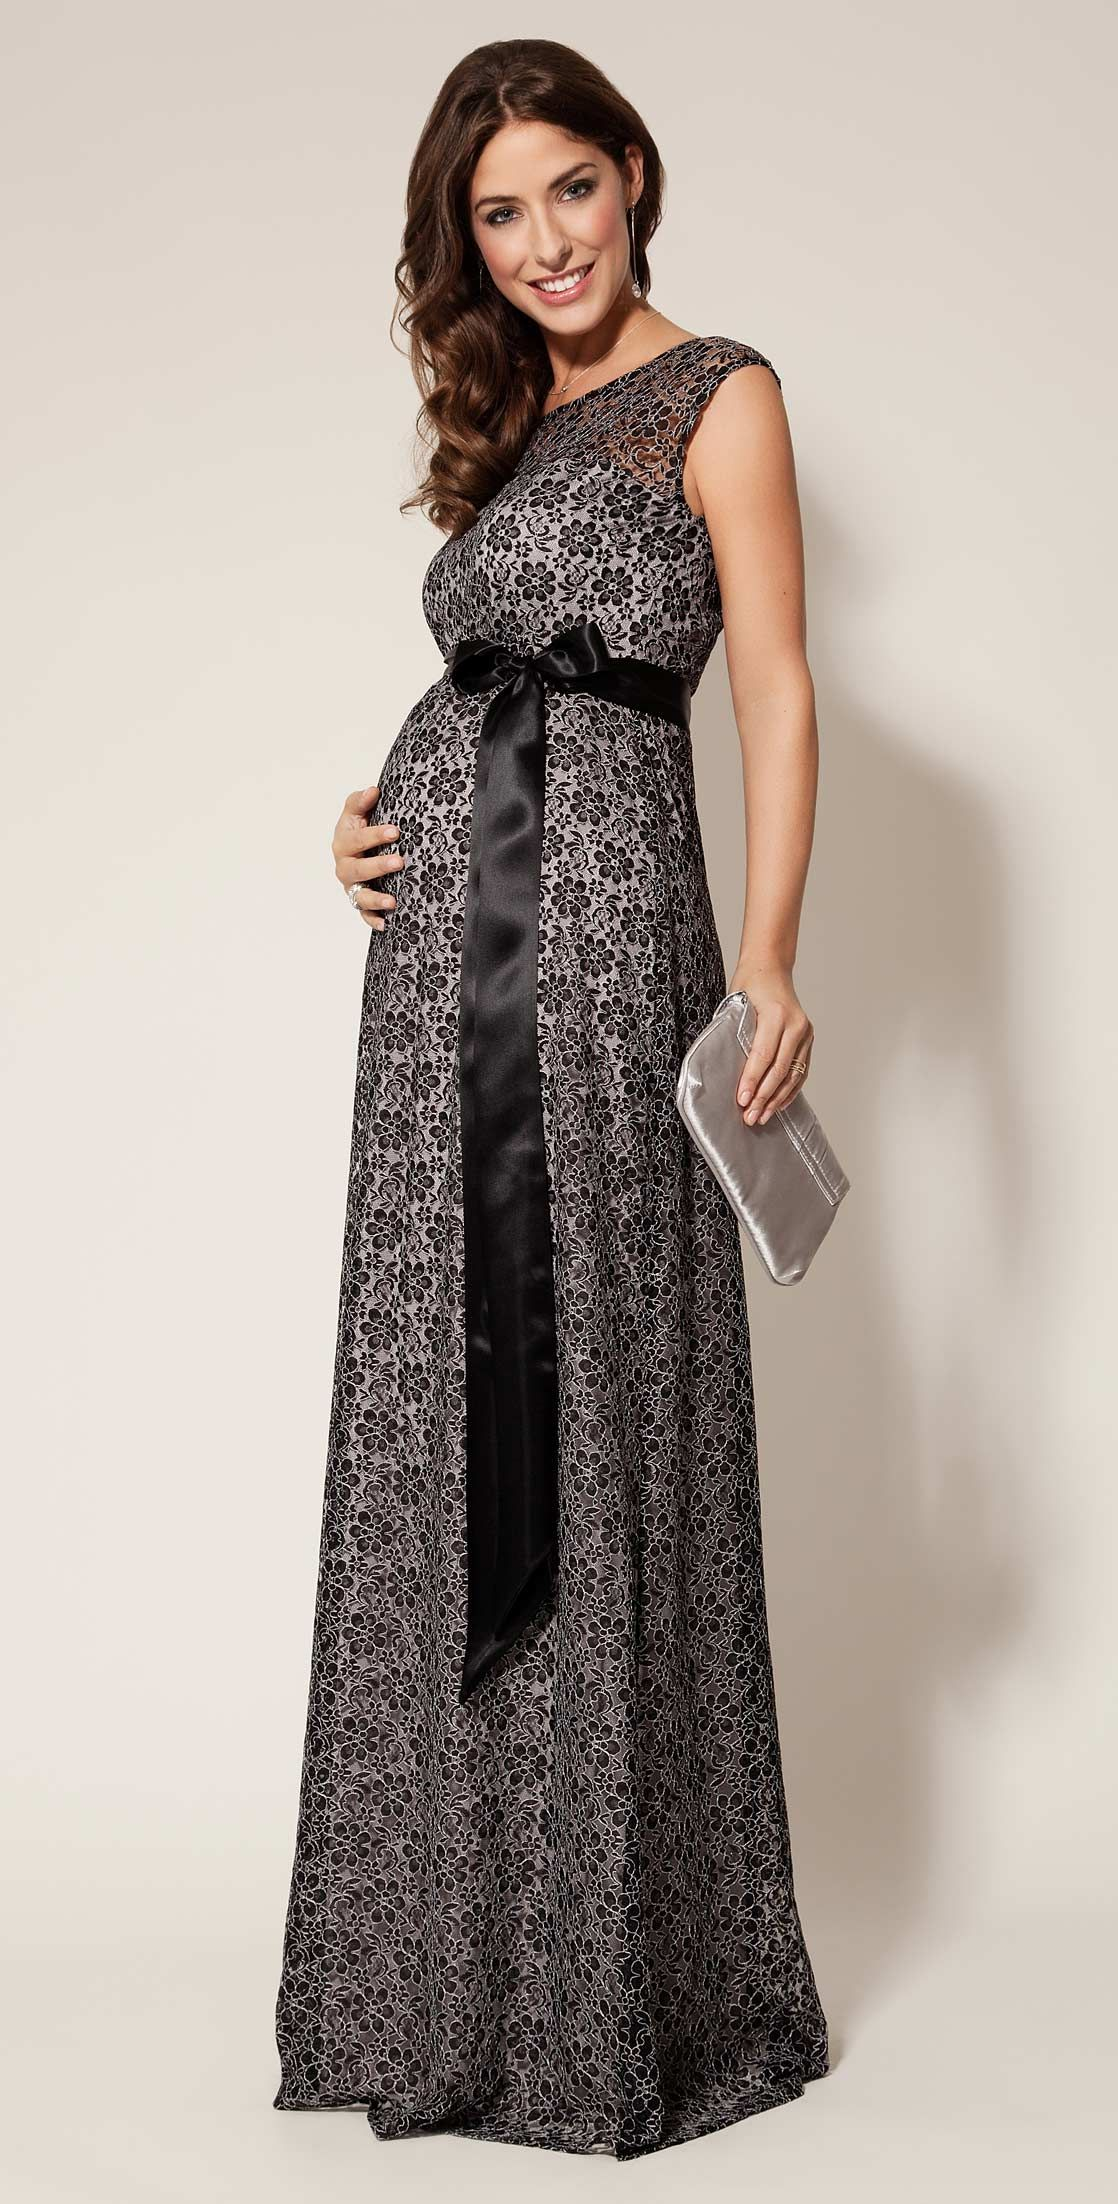 Daisy Maternity Gown Long Black And Silver Wedding Dresses Evening Wear Party Clothes By Tiffany Rose